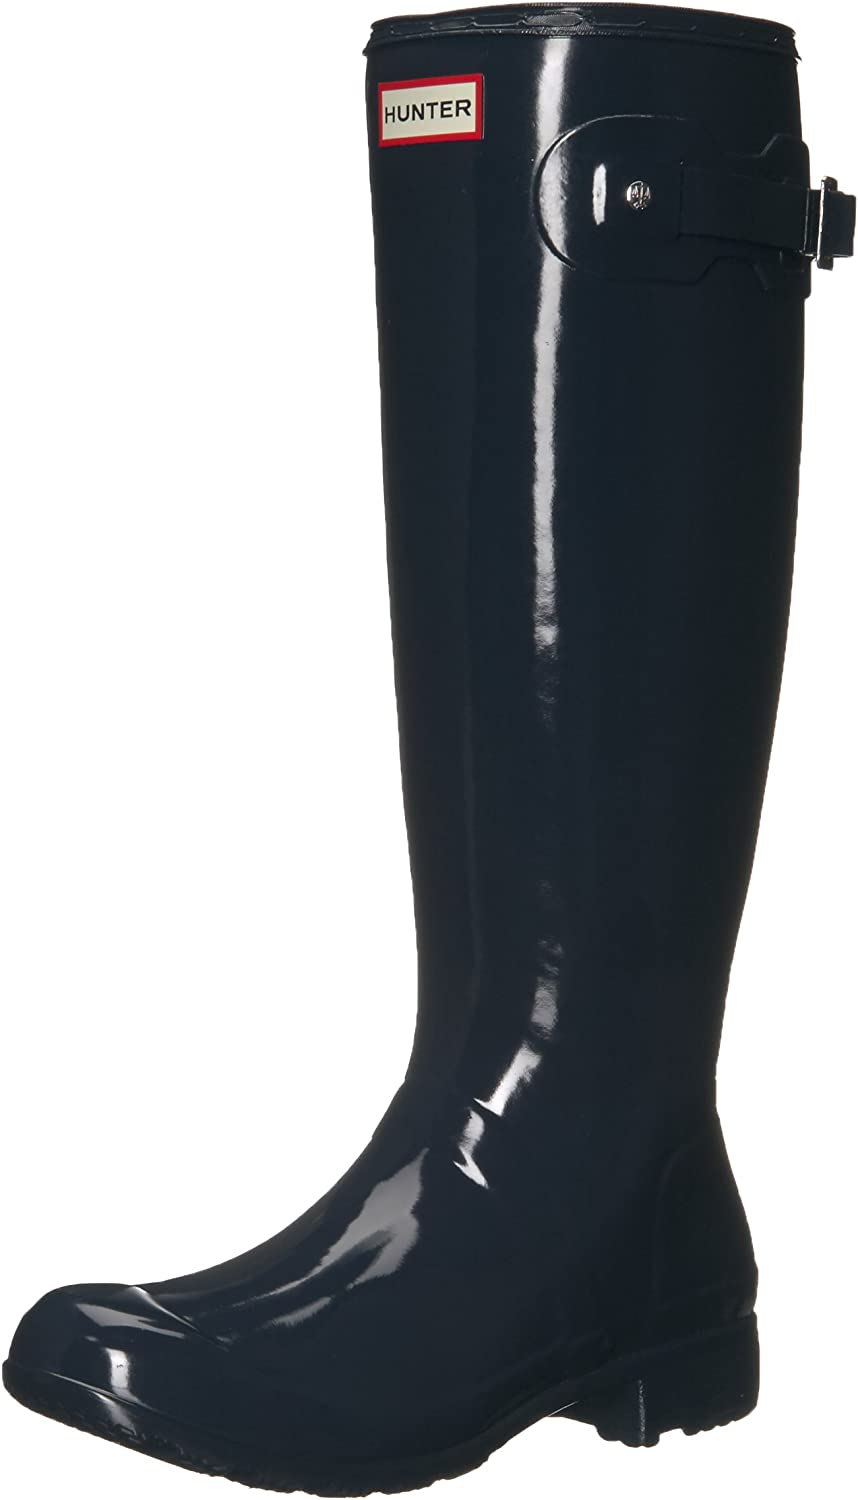 Hunter Womens Original Tour Gloss Galoshes Snow Wellingtons Rain Boots